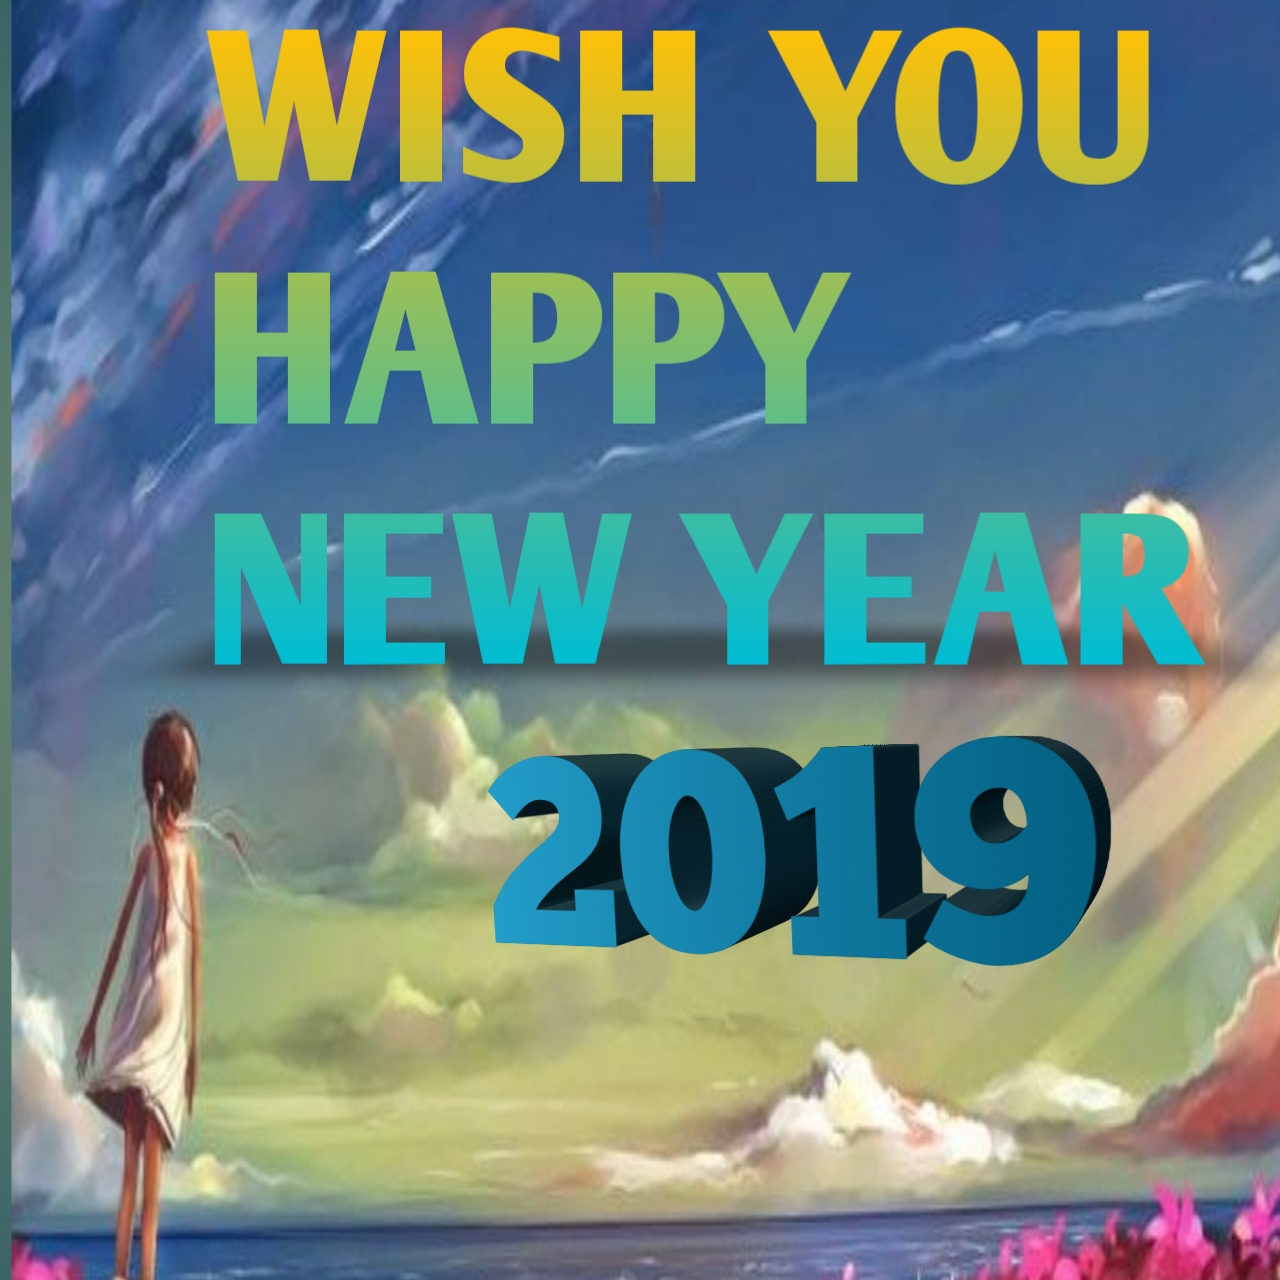 Happy New Year 2019 Wishes Images Messages Quotes Status Lovers